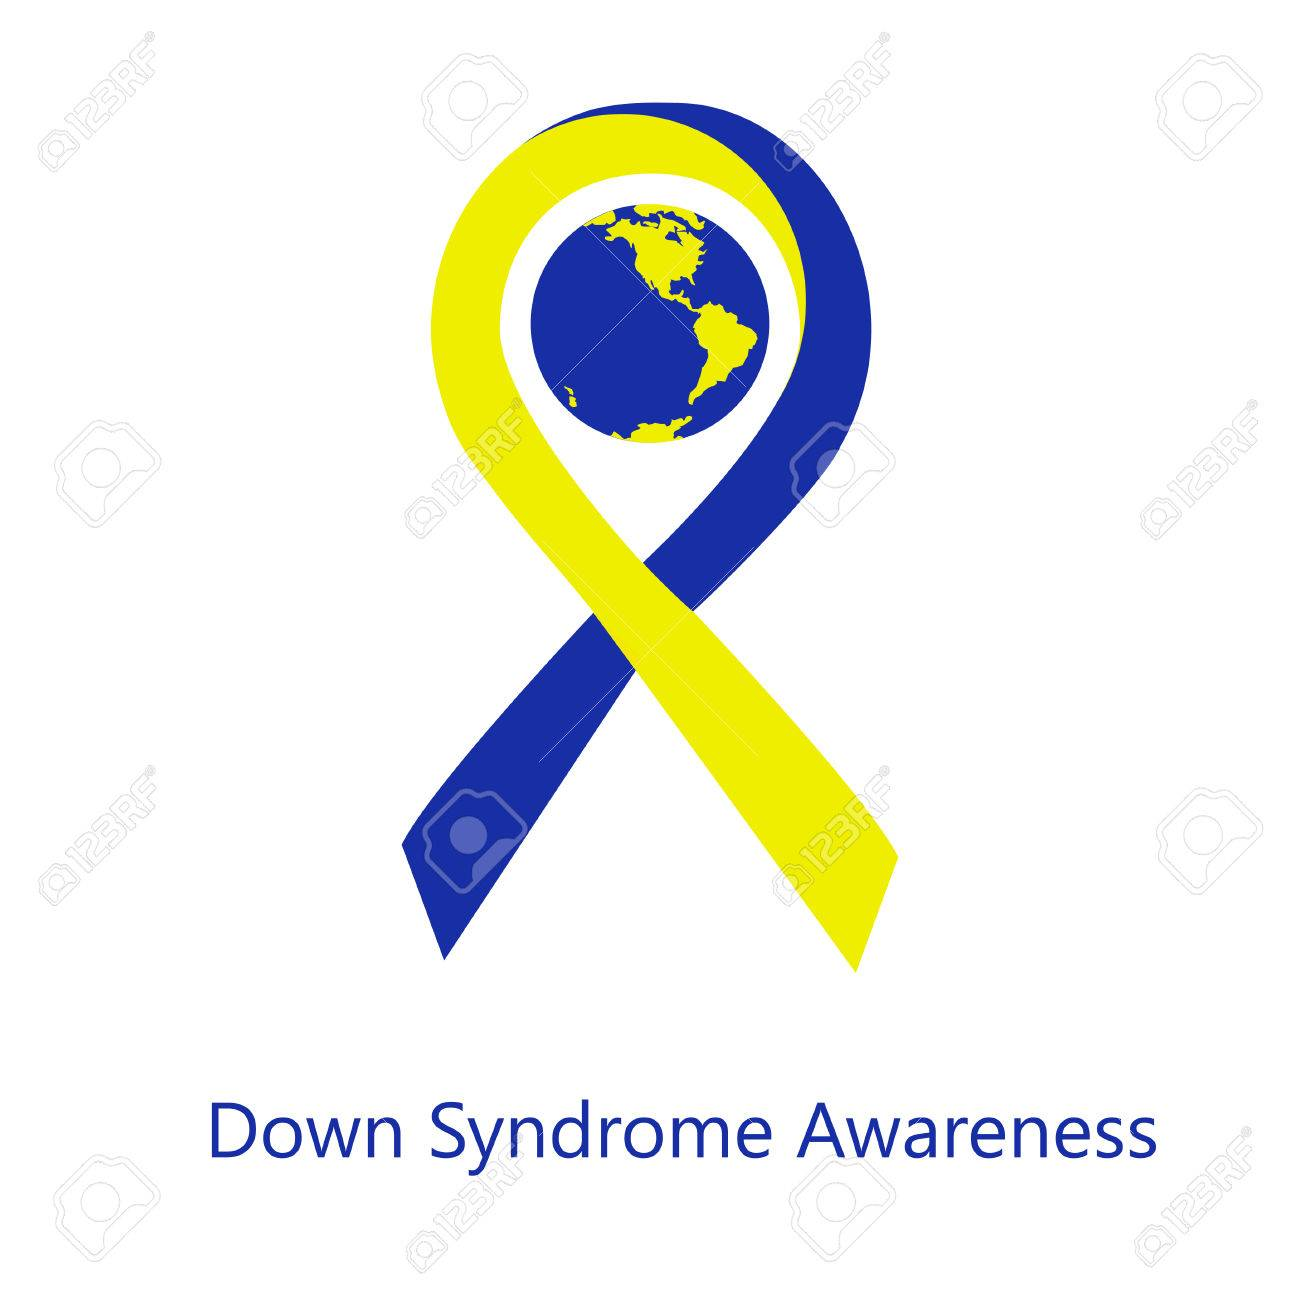 International Day Of Down Syndrome Awareness Vector Illustration